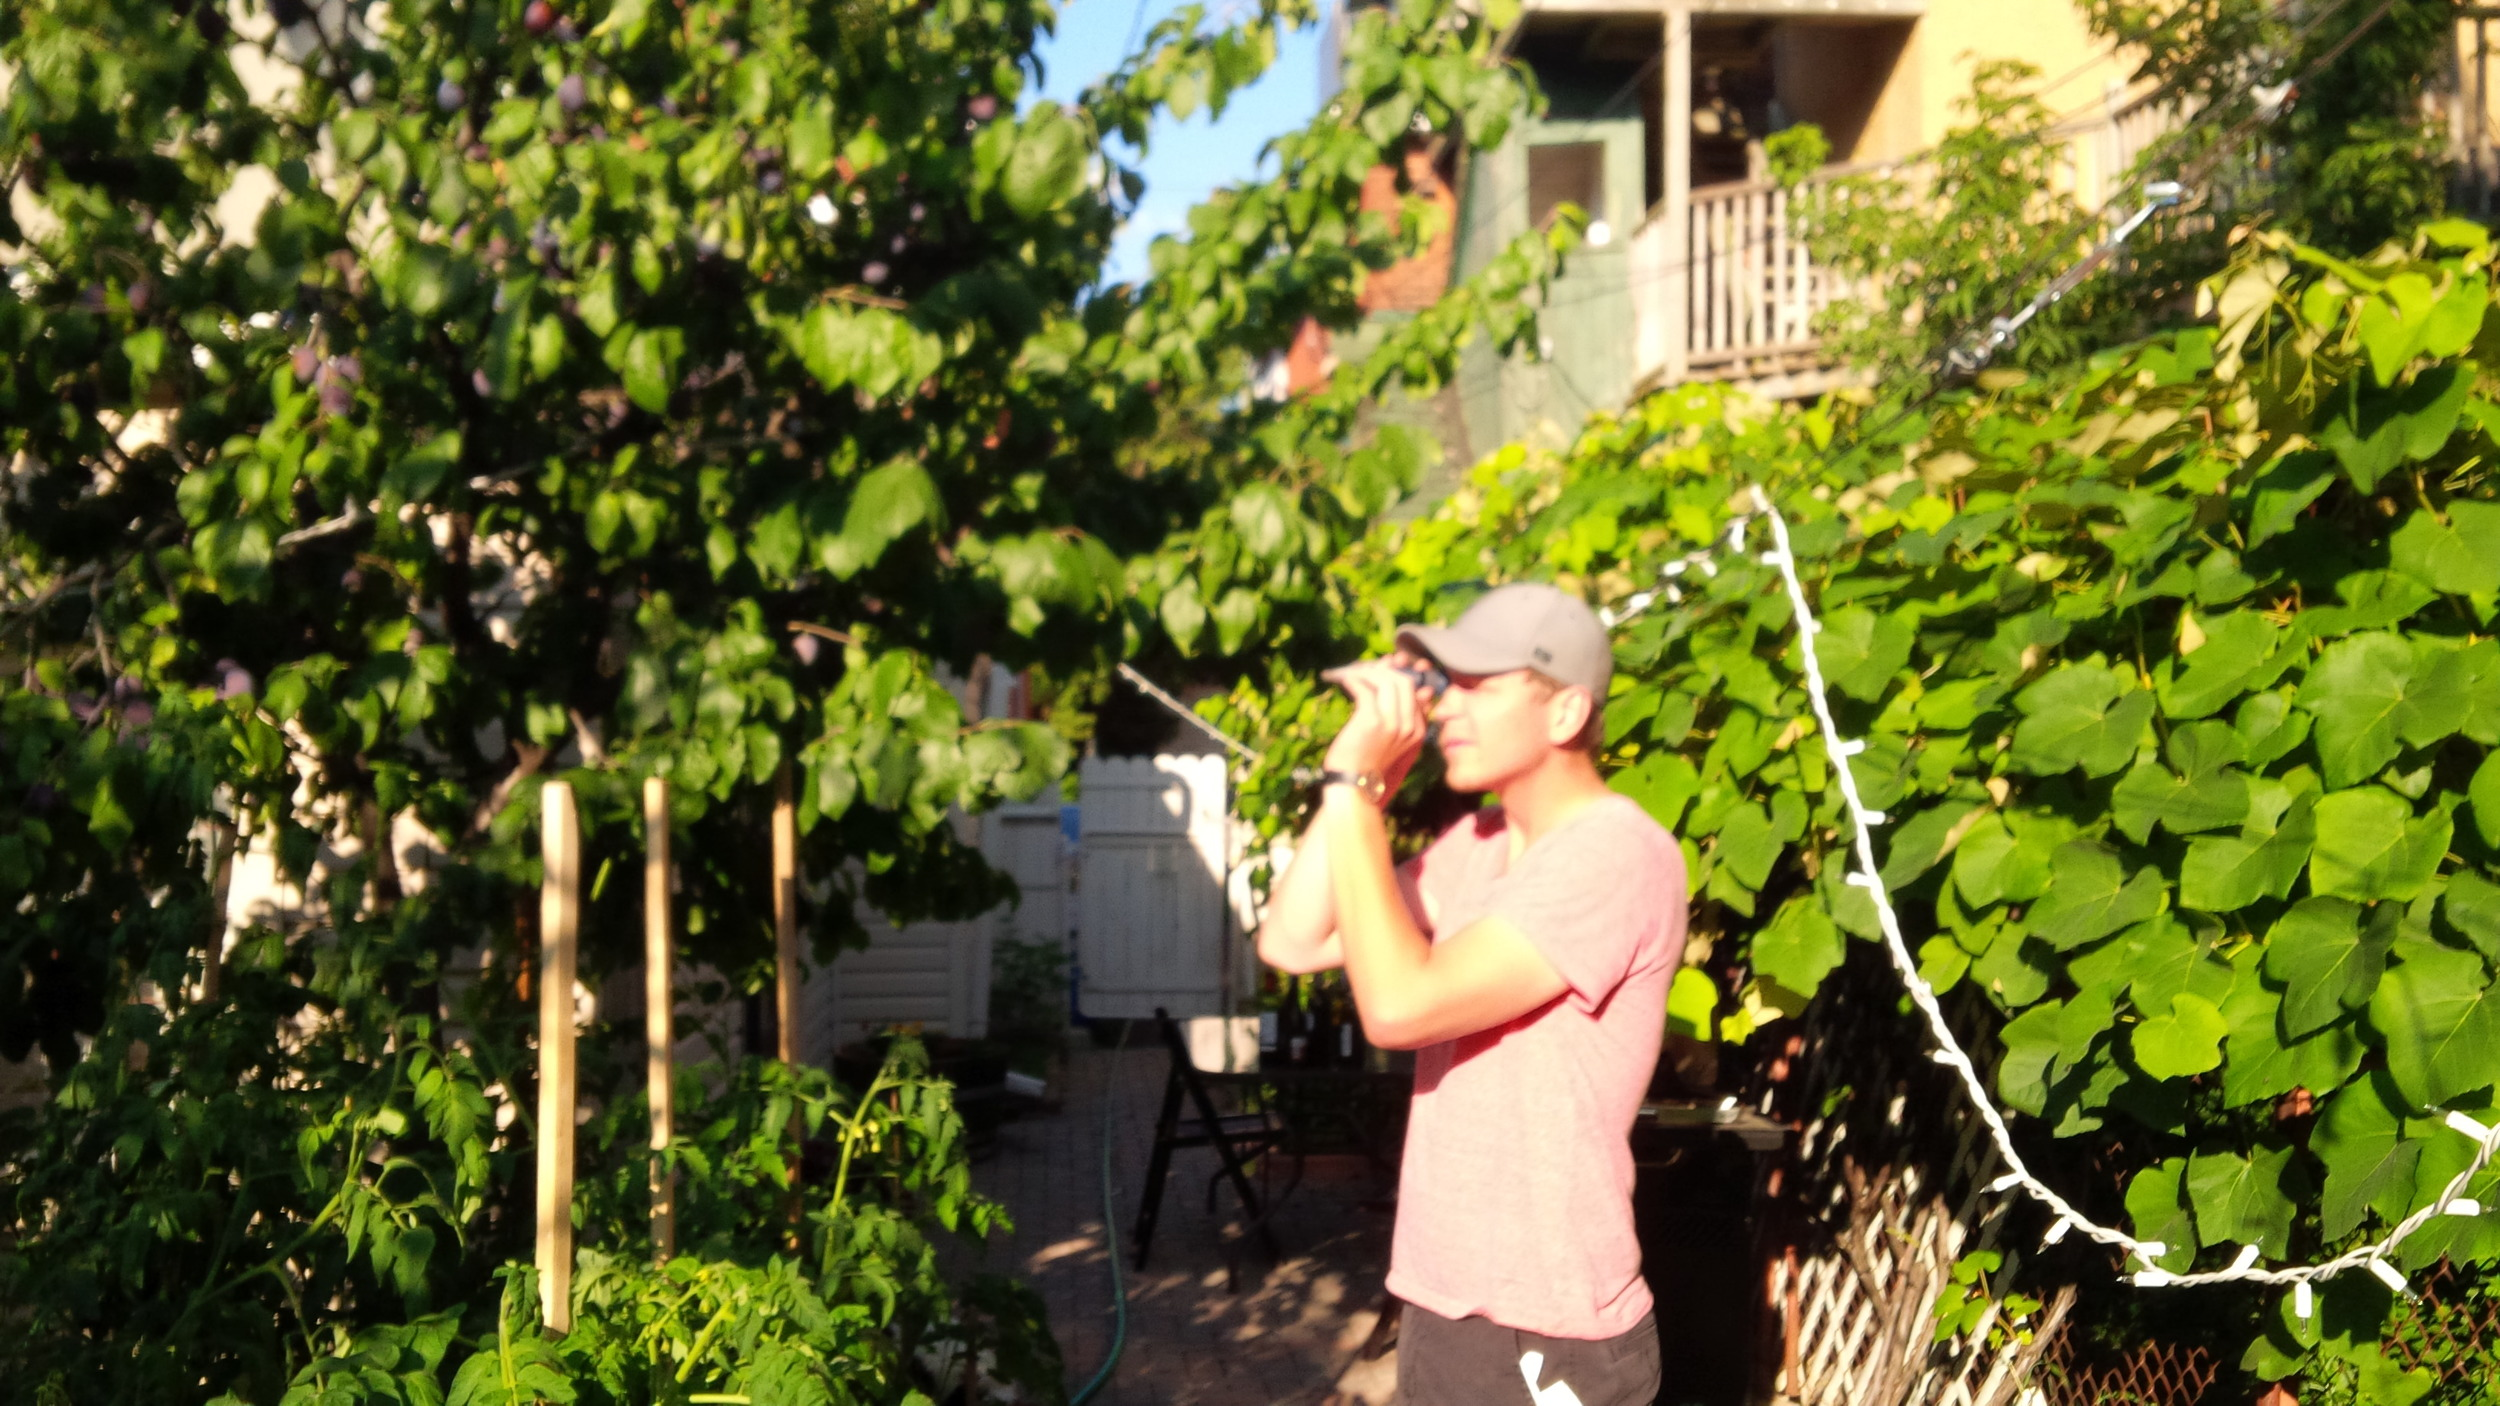 Checking the degrees brix with a refractometer. Row of estate grapes in background.